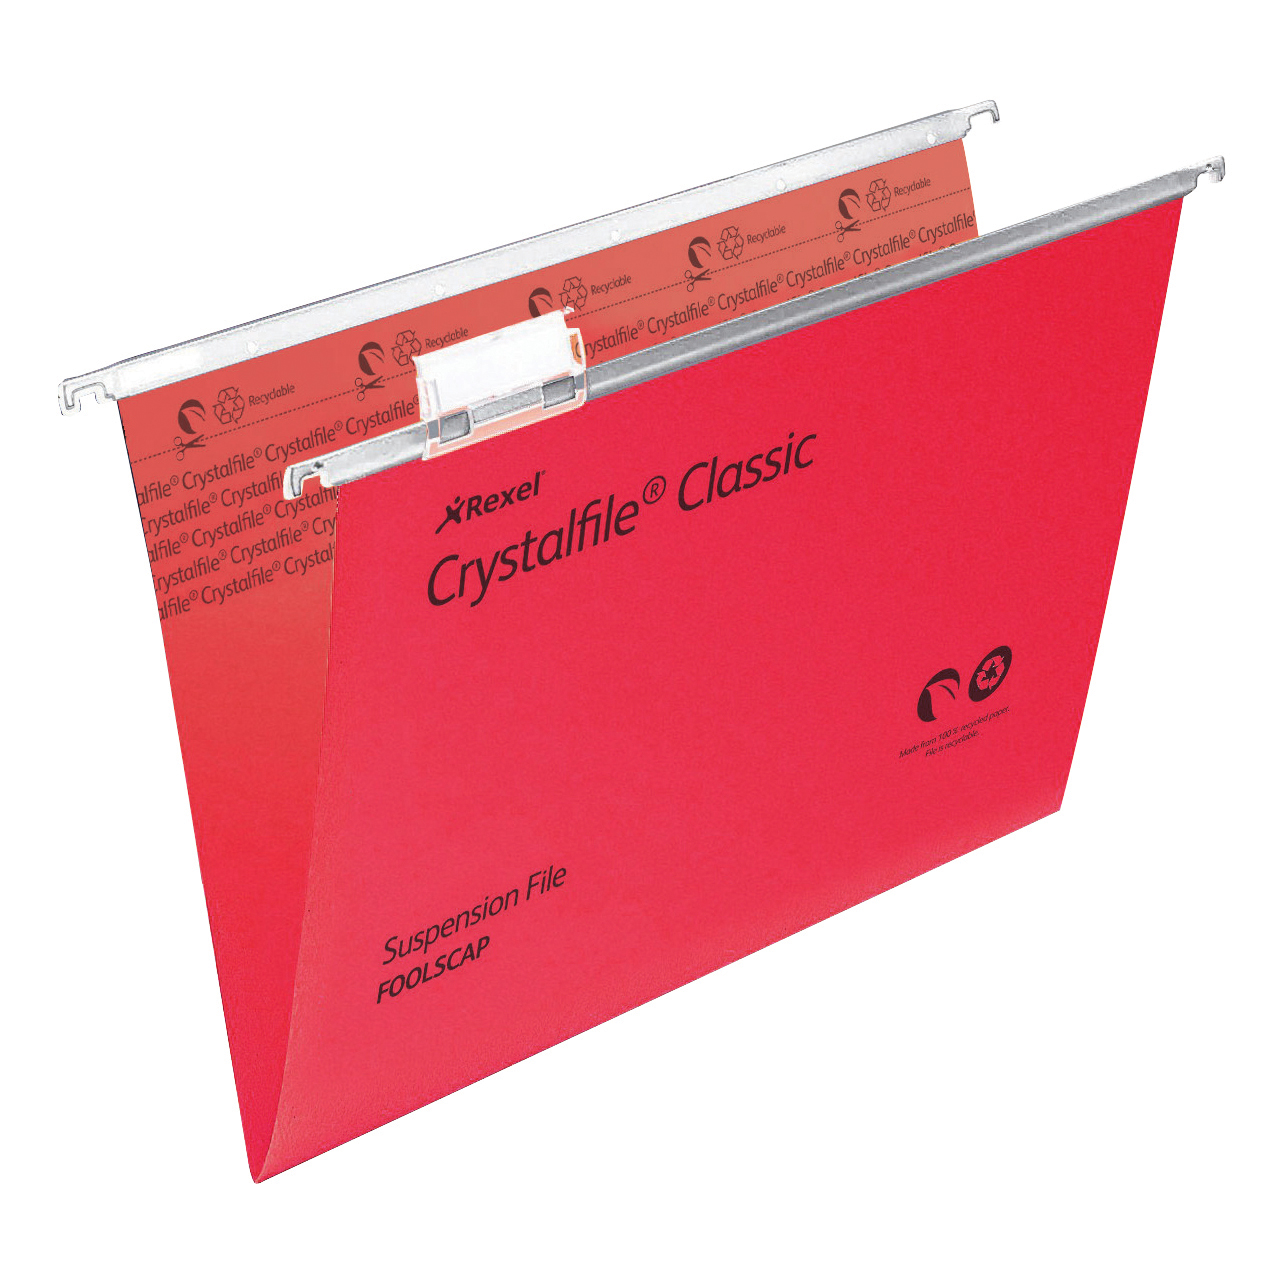 Rexel Crystalfile Classic Suspension File Manilla V-base 15mm Foolscap Red Ref 78141 [Pack 50]